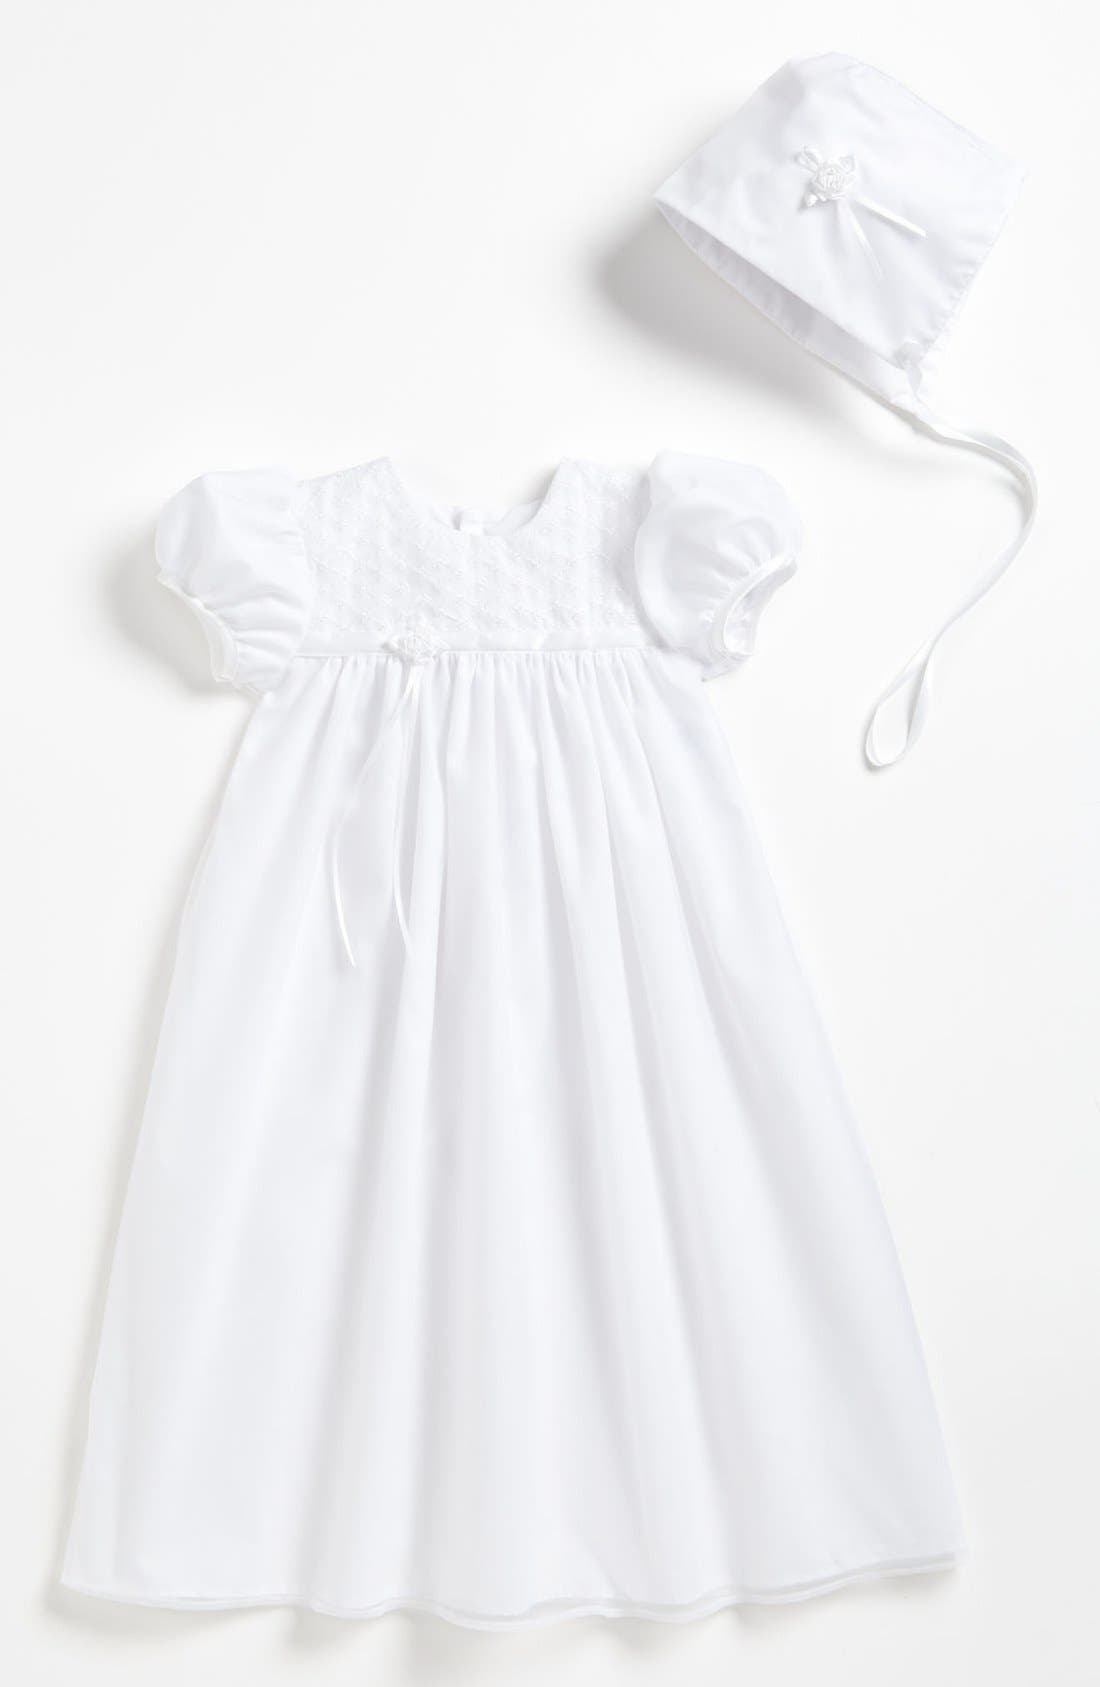 Main Image - Little Things Mean a Lot Embroidered Christening Gown & Bonnet (Baby Girls)